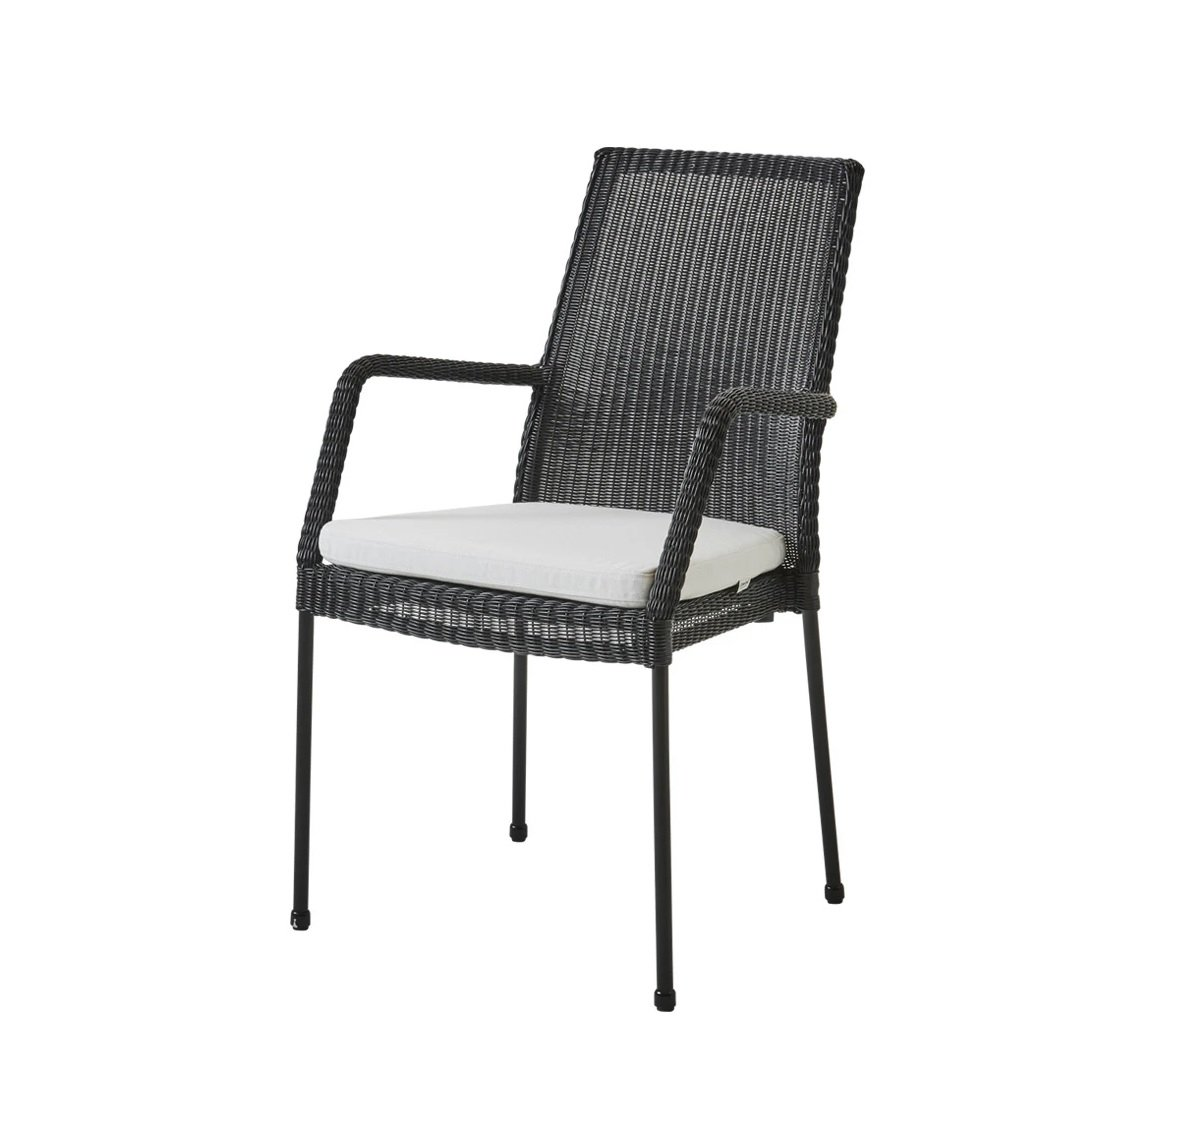 Newport Armchair from Cane-line, designed by Cane-line Design Team